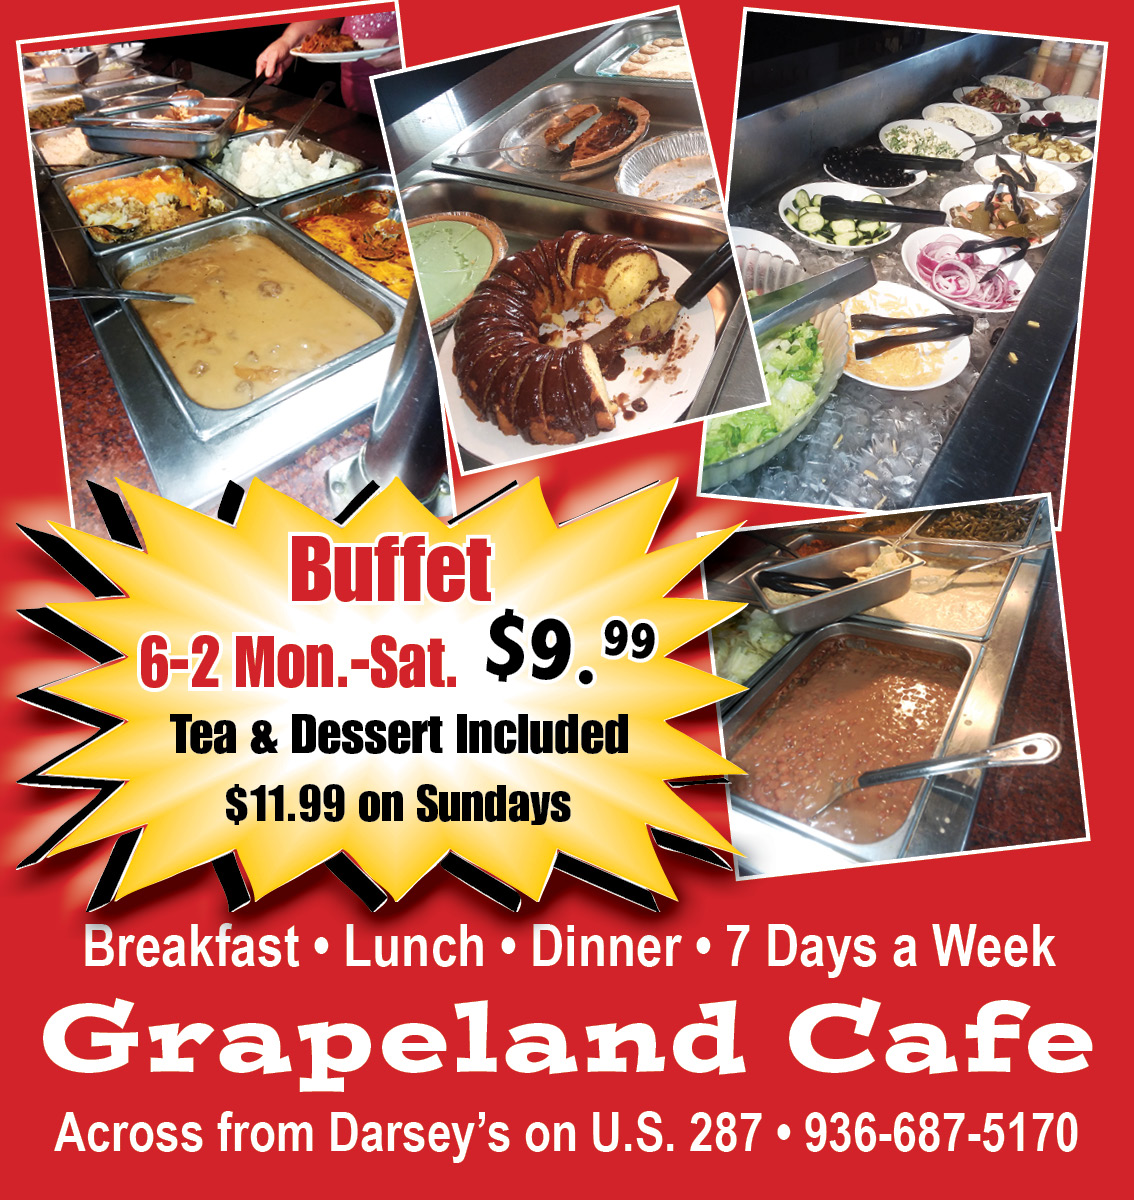 Grapeland-Cafe-2x4-web-ad-100418.jpg